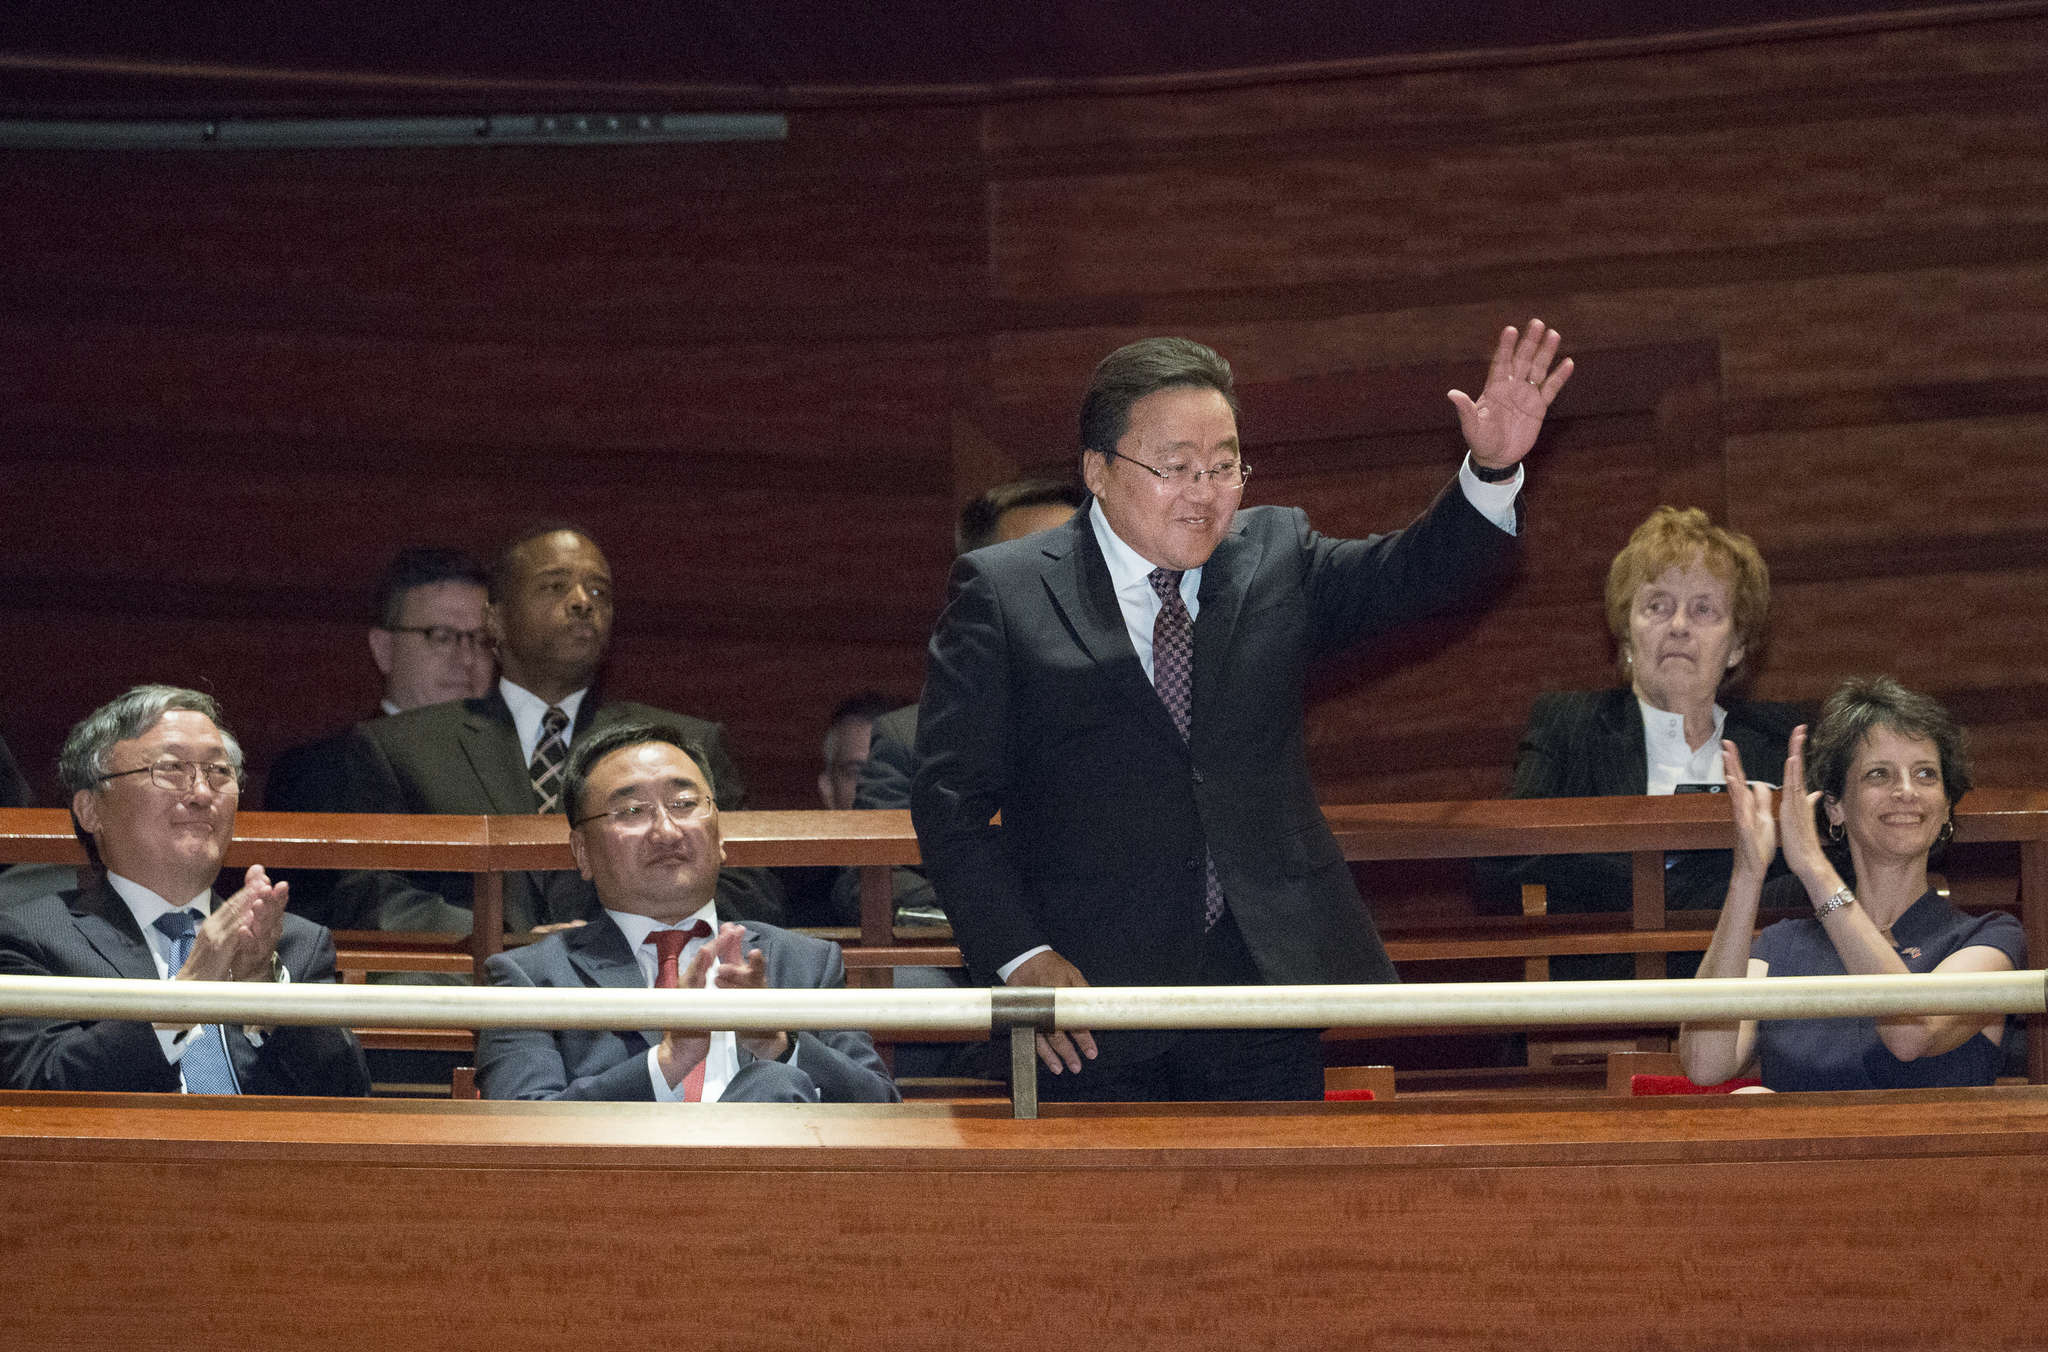 Mongolian President Tsakhiagiin Elbegdorj acknowledges applause at the start of a special concert at the Kimmel Center. The orchestra will visit his country next June as part of an Asian tour.